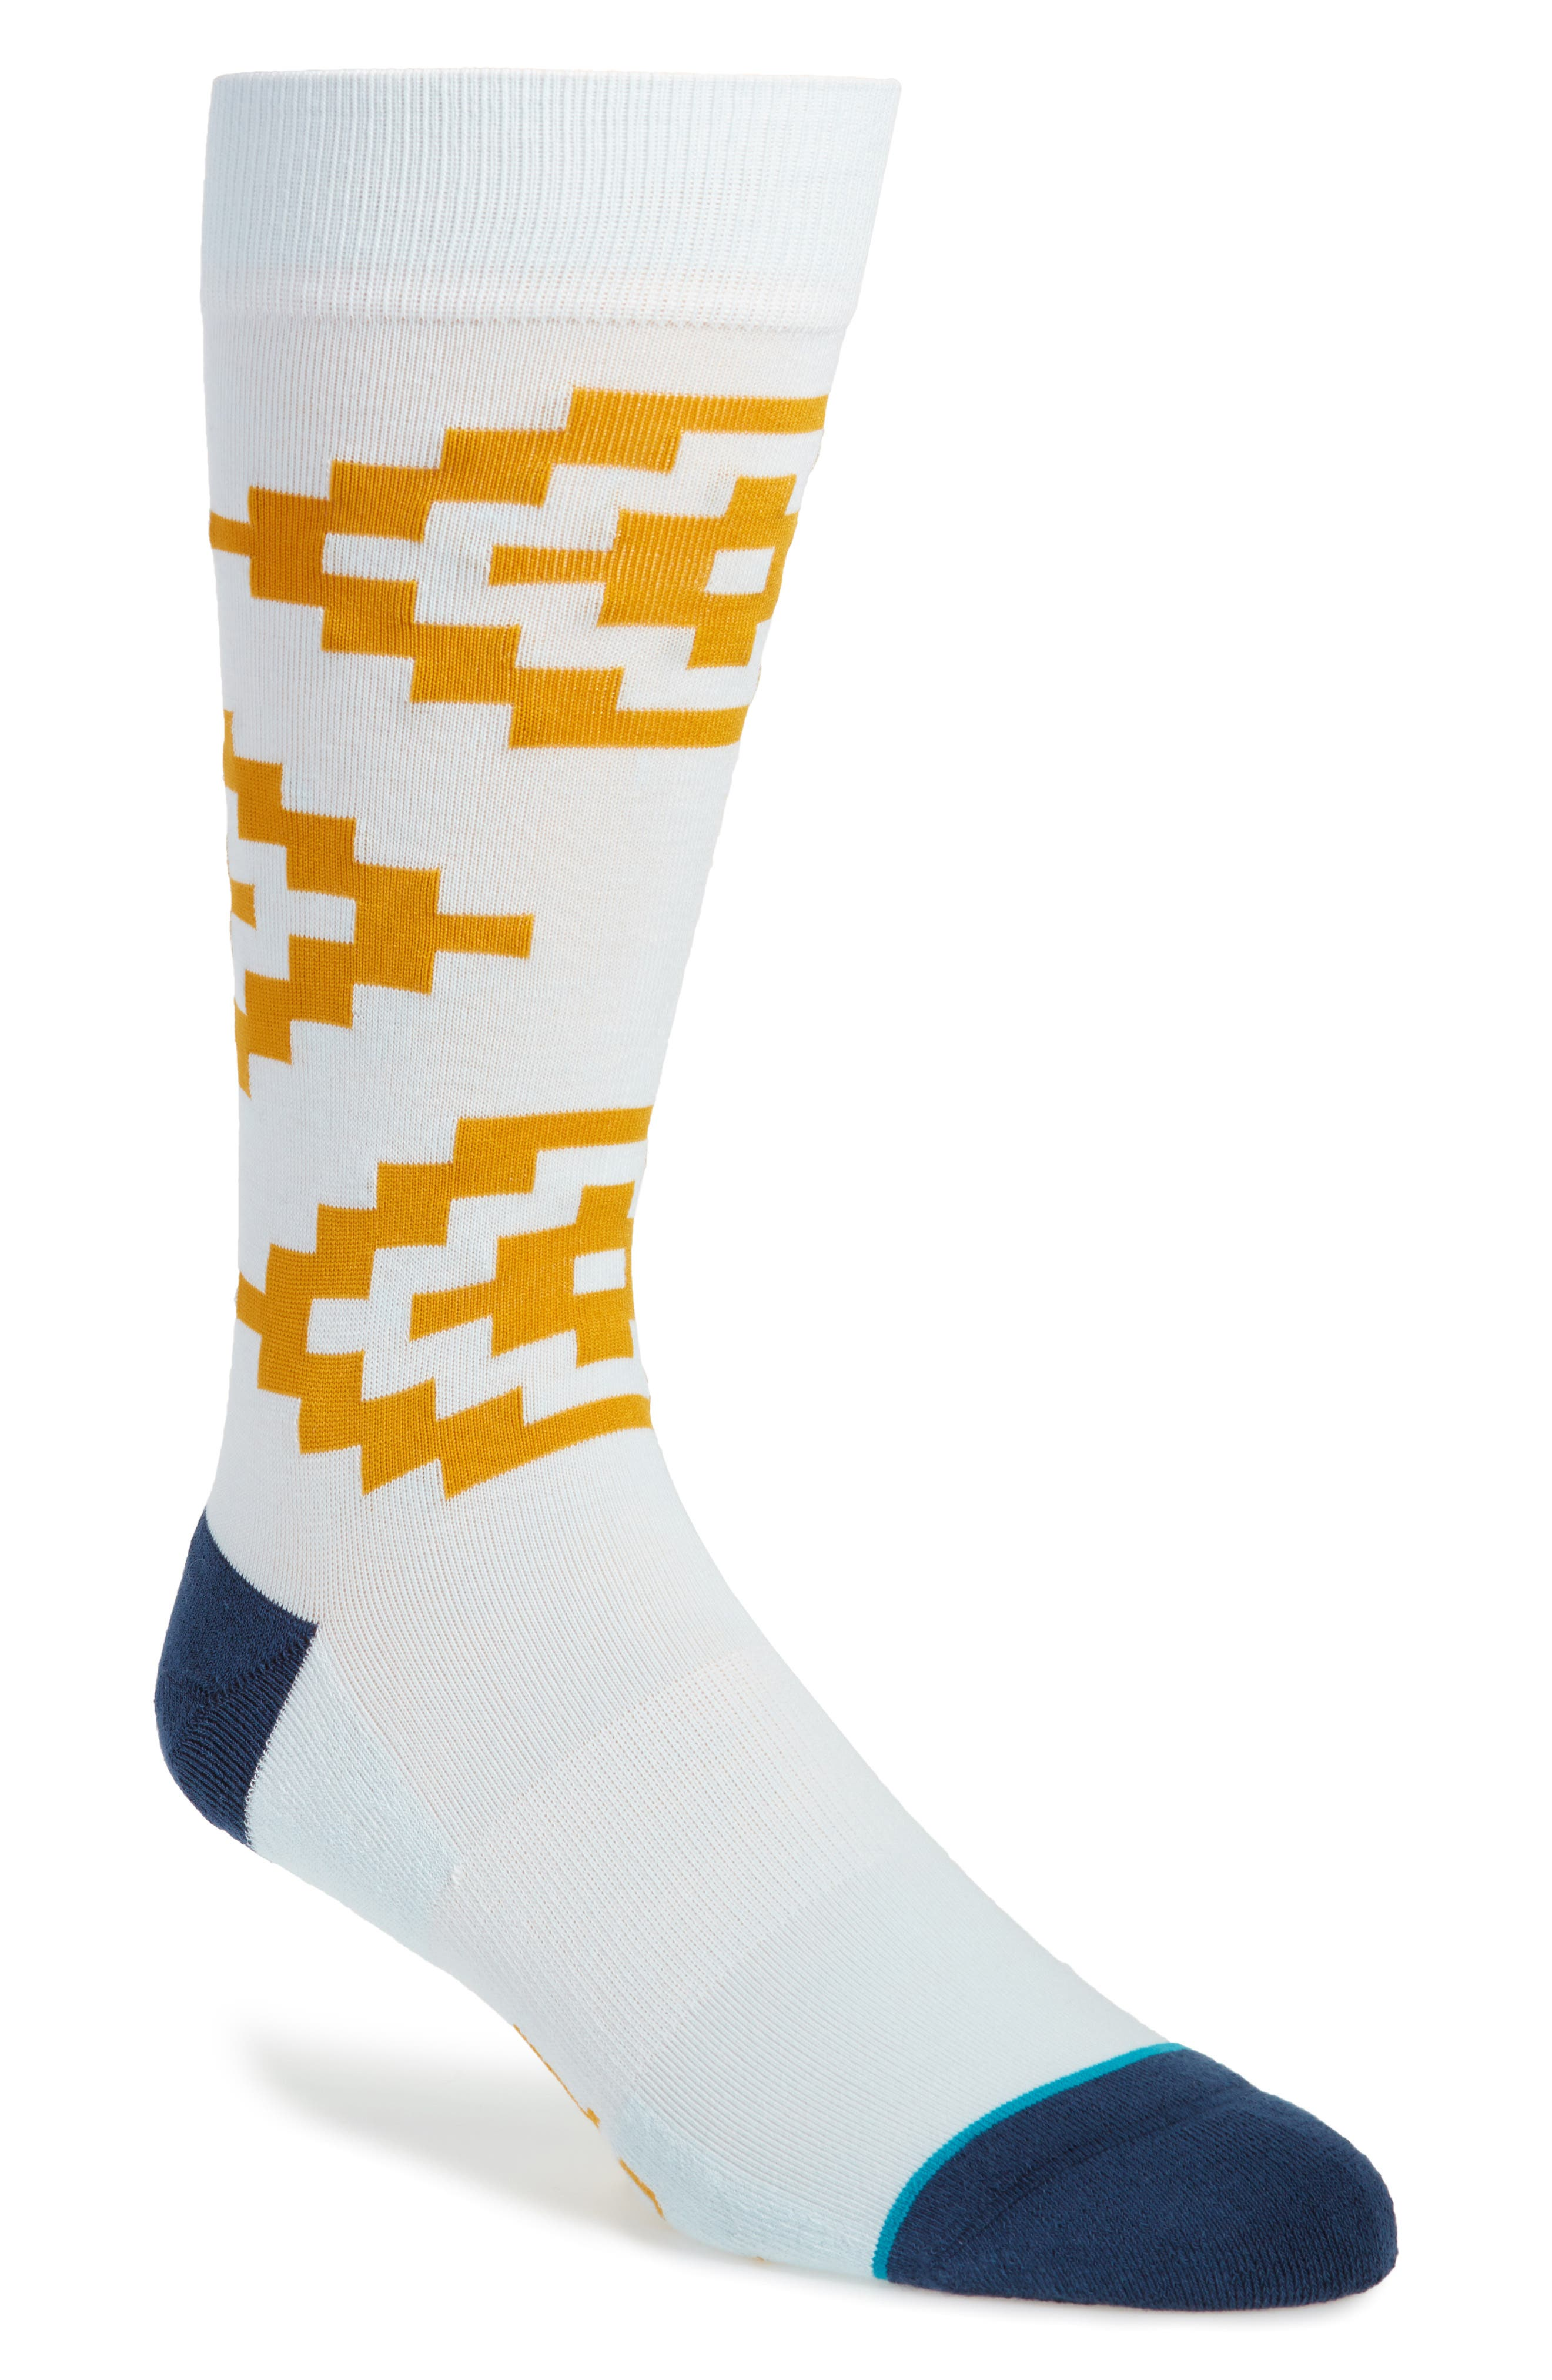 Cairns Crew Socks,                         Main,                         color, BLUE